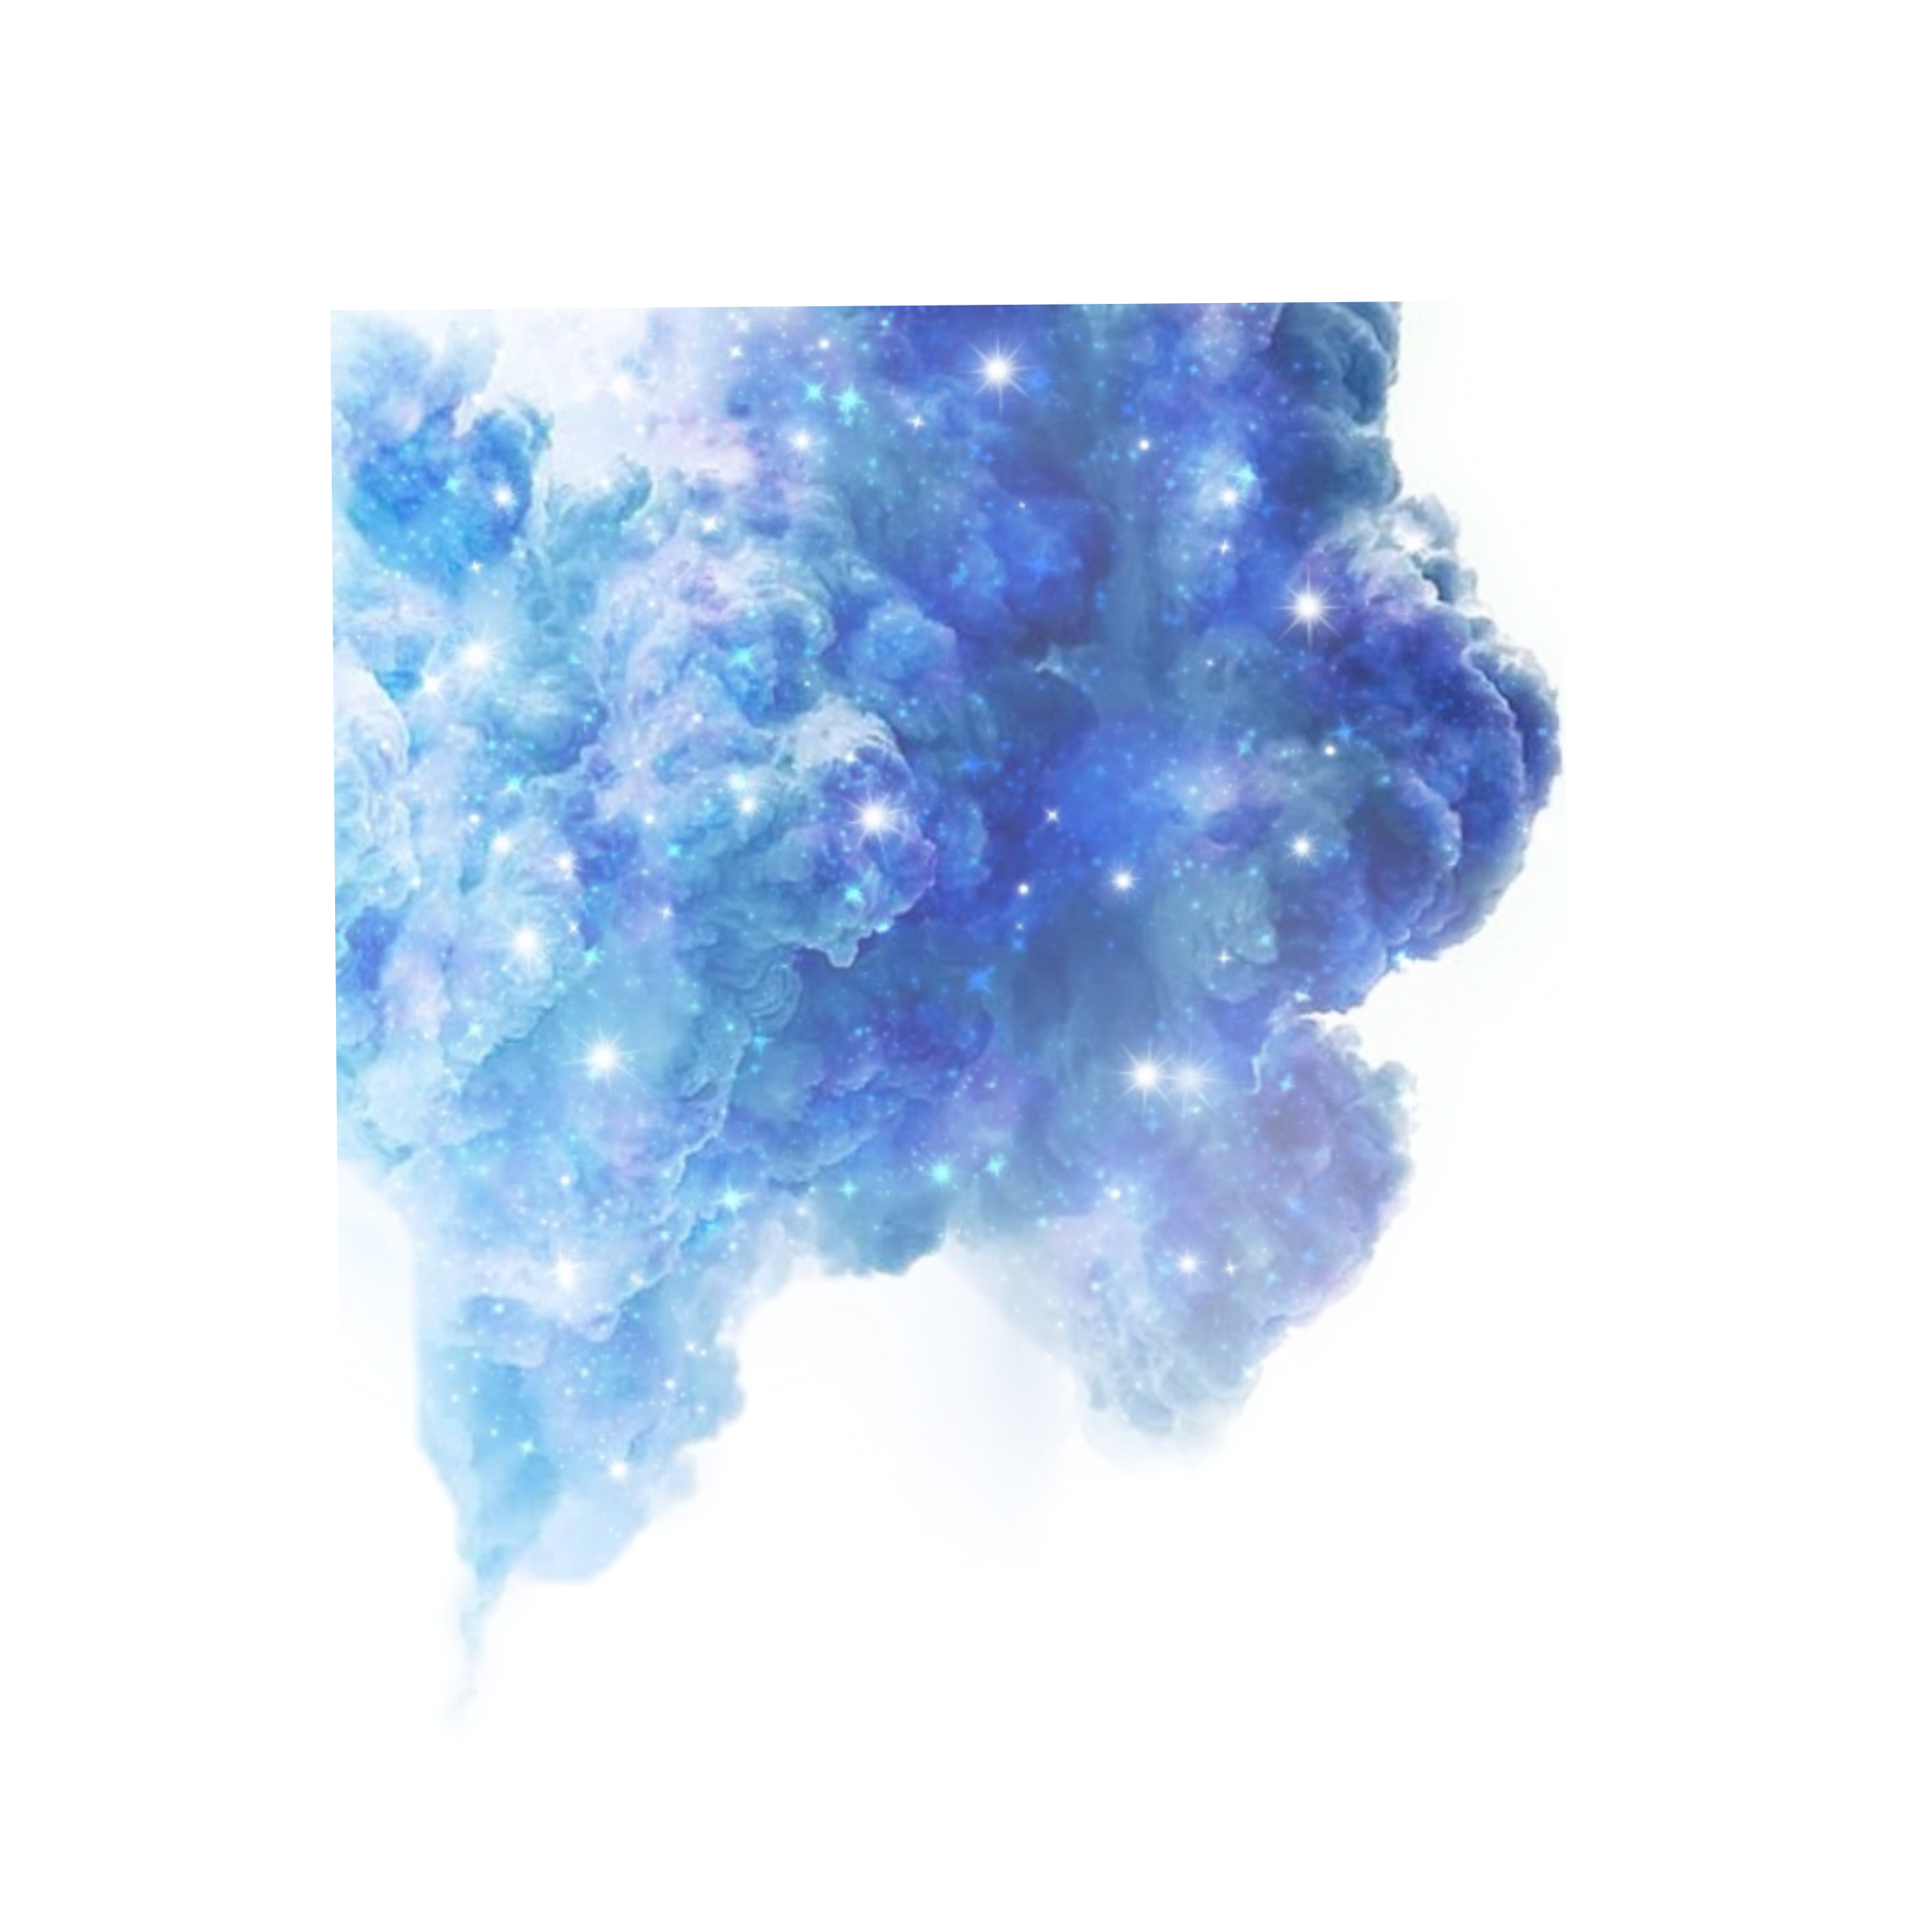 Freetoedit Blue Stars Clouds Galaxy Background Overlay Remixed From Seyyyahh Pretty Wallpapers Cloud Stickers Overlays